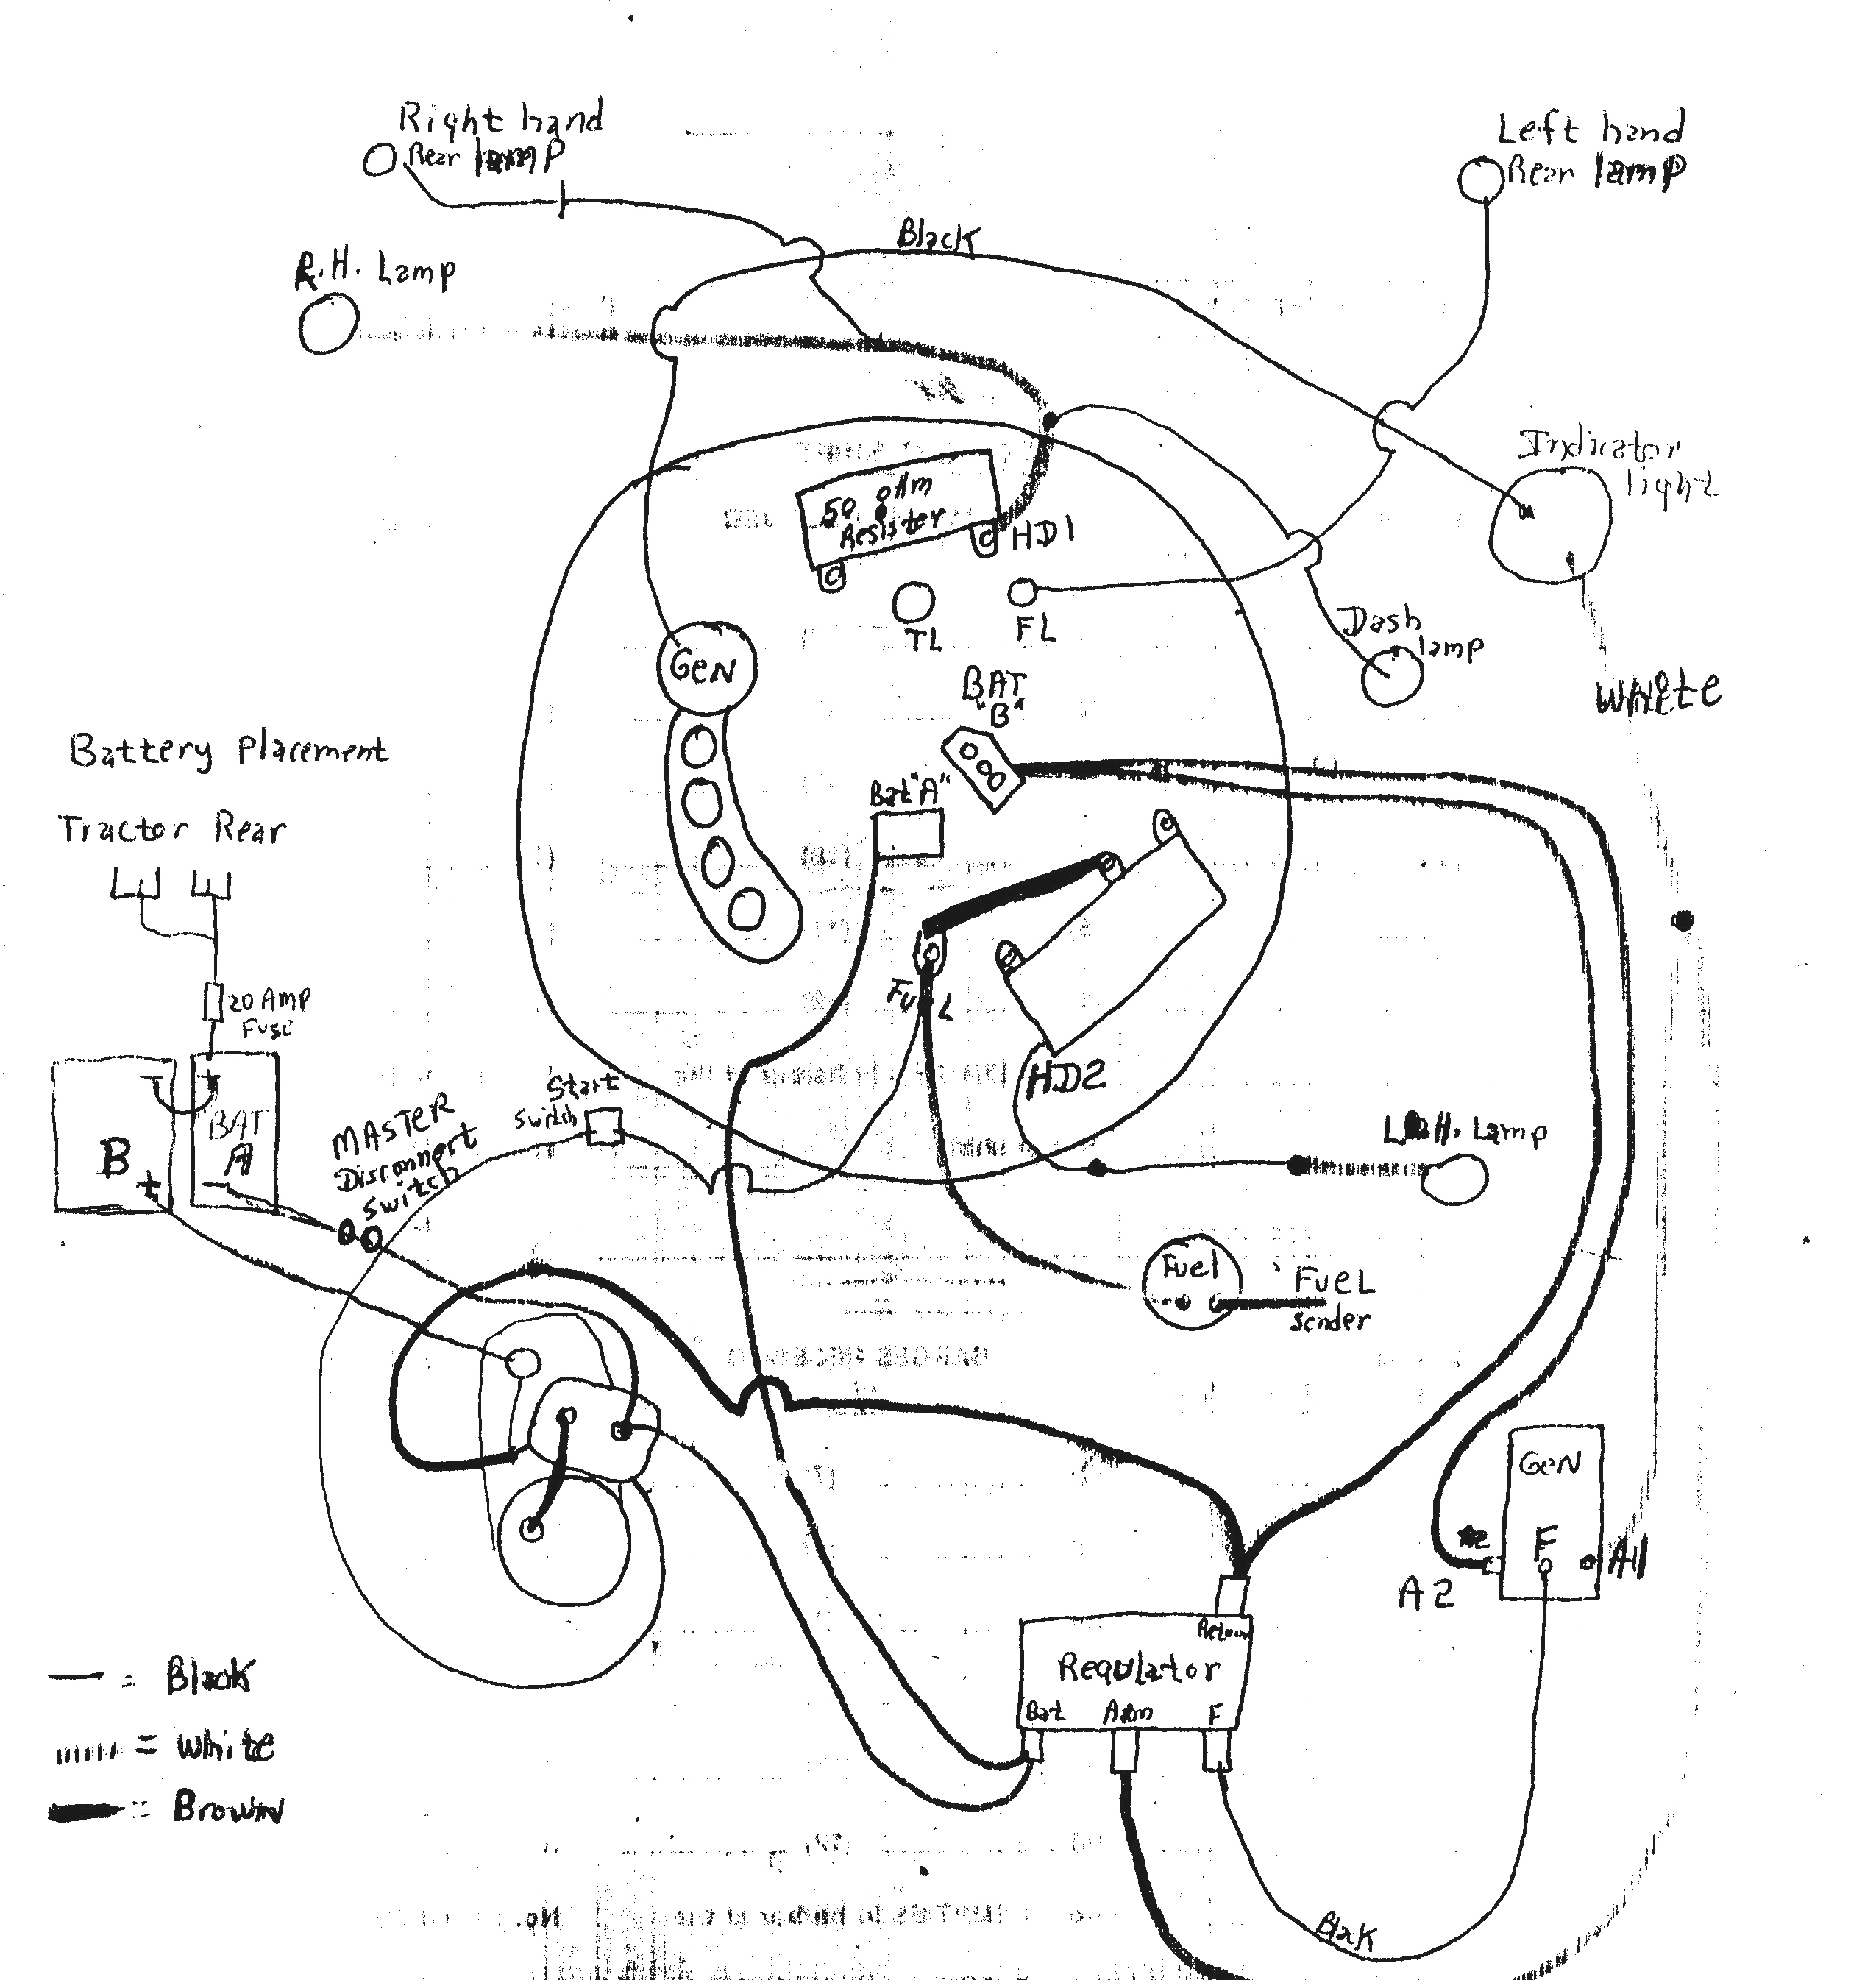 67 Lemans Dash Wiring Harness as well 308312 furthermore Catalog3 besides Ford Starter Solenoid Wiring Diagram Car Images likewise P 0900c1528021634d. on 1964 chevy ignition switch diagram